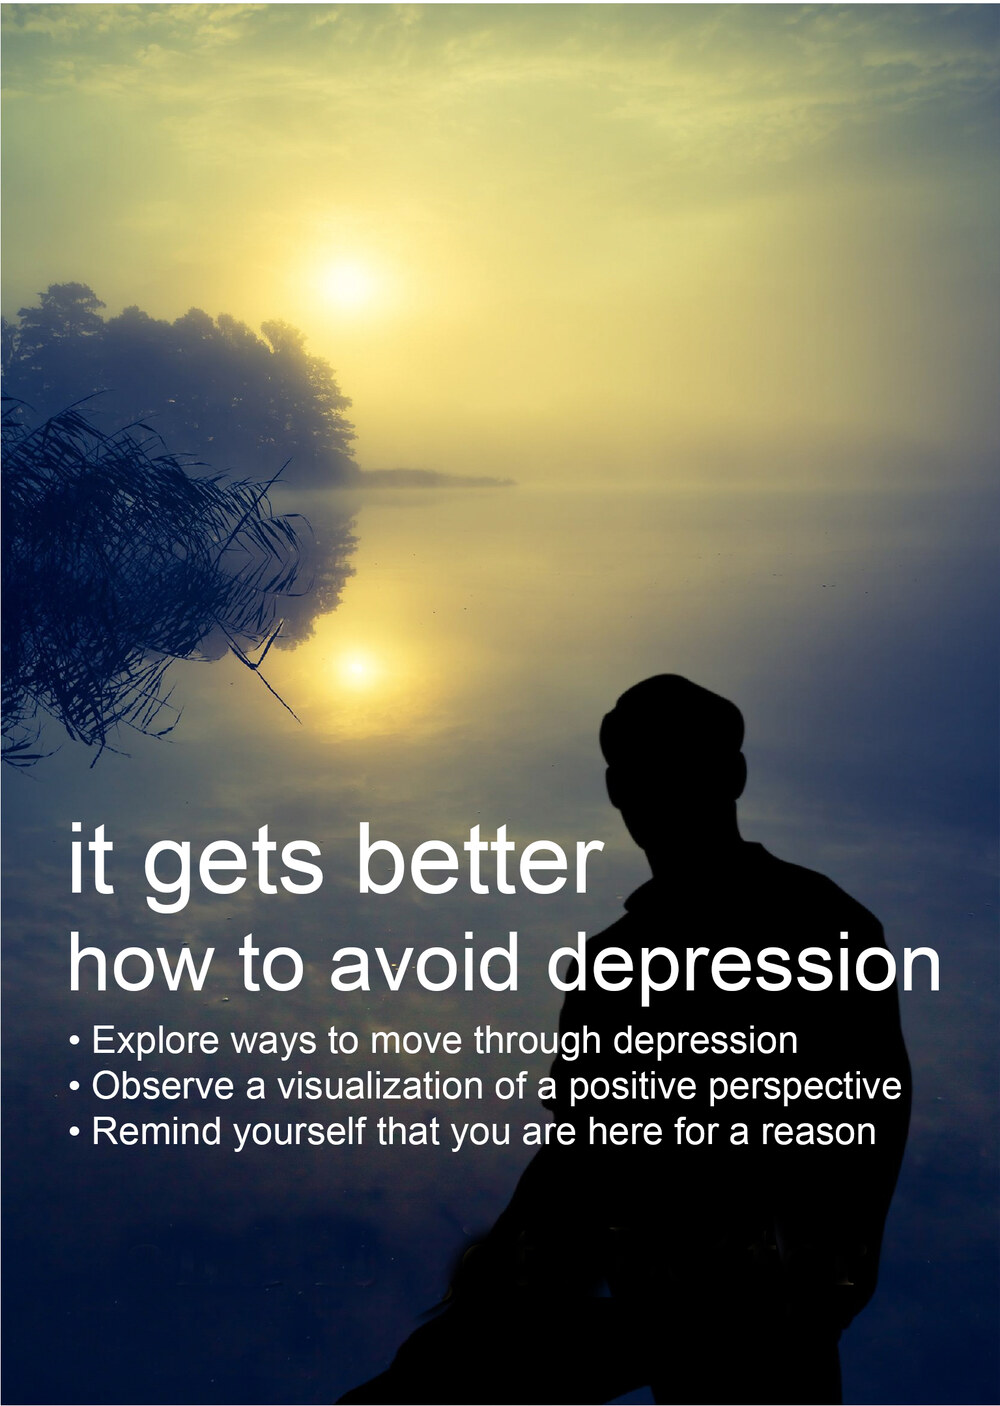 C73 - It Gets Better - How to Avoid Depression